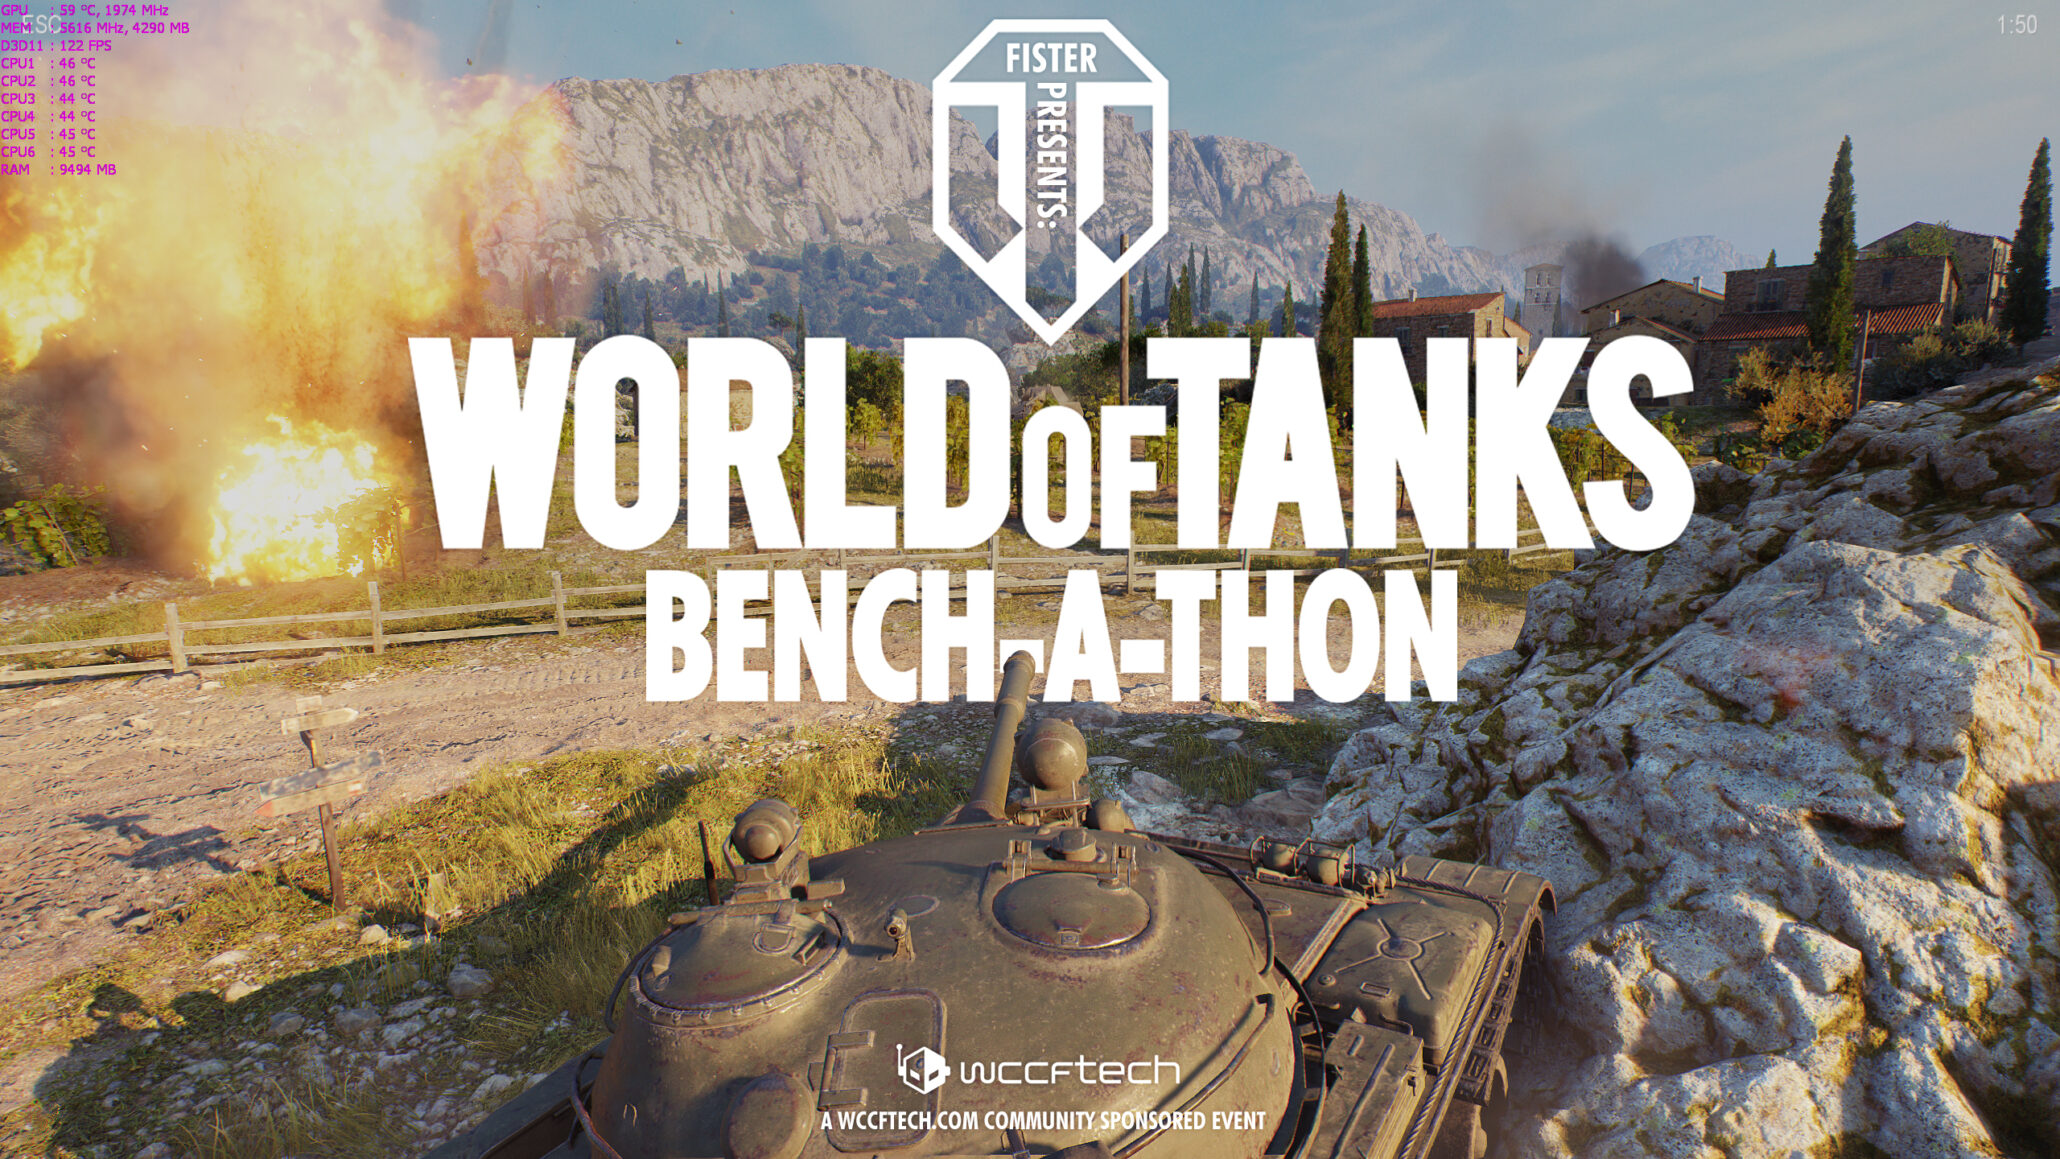 Wccftech Community Bench-a-Thon: World of Tanks